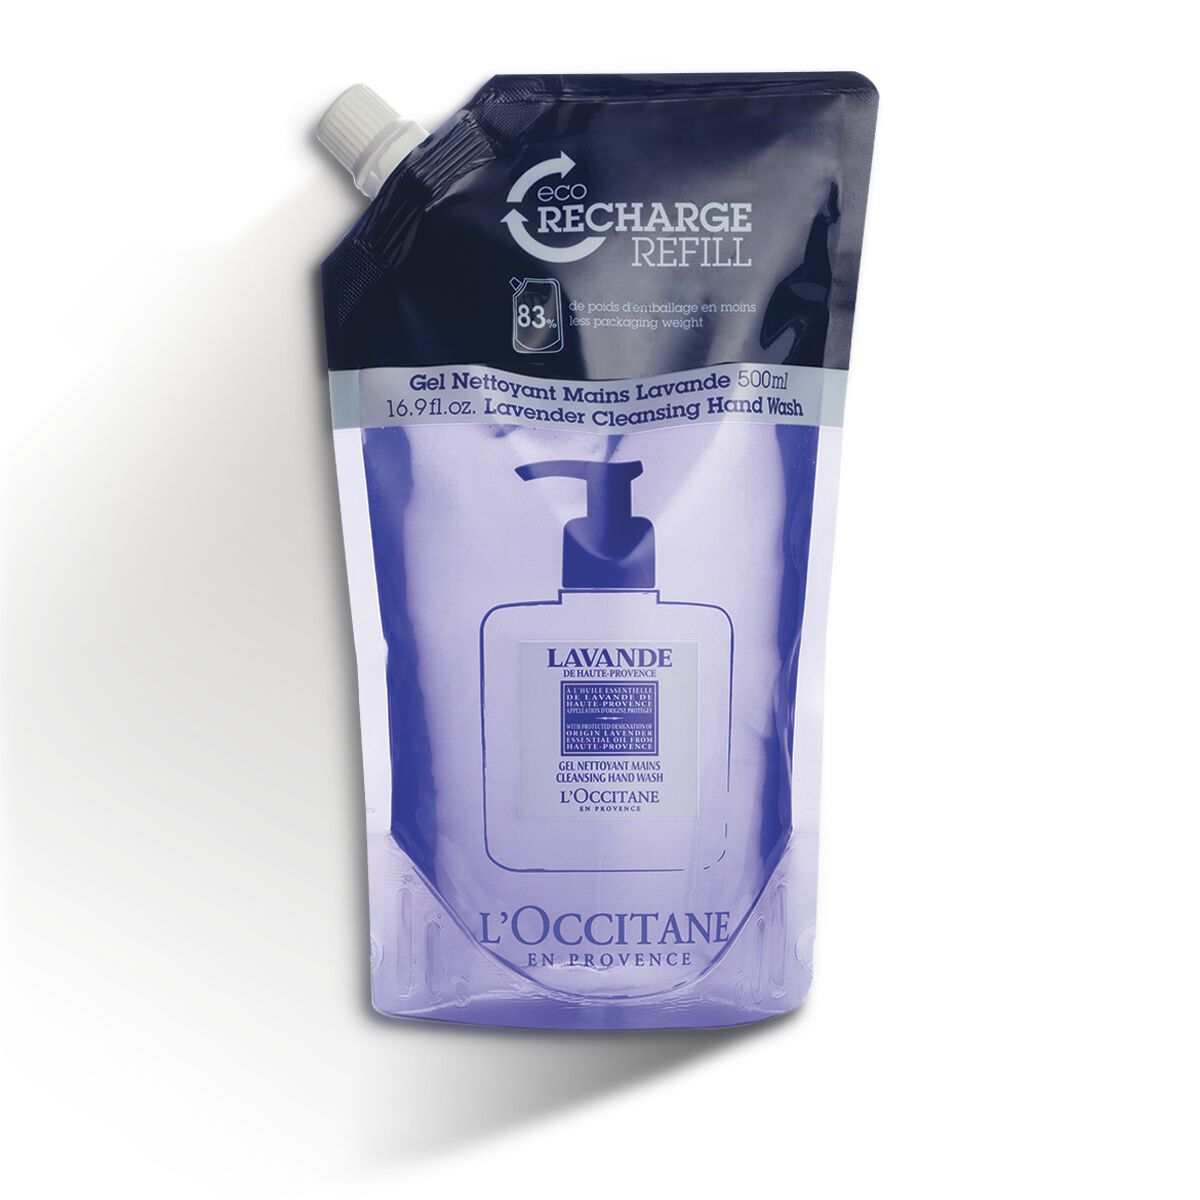 Lavender Cleansing Hand Wash Refill 16.9 fl. oz. from L'OCCITANE